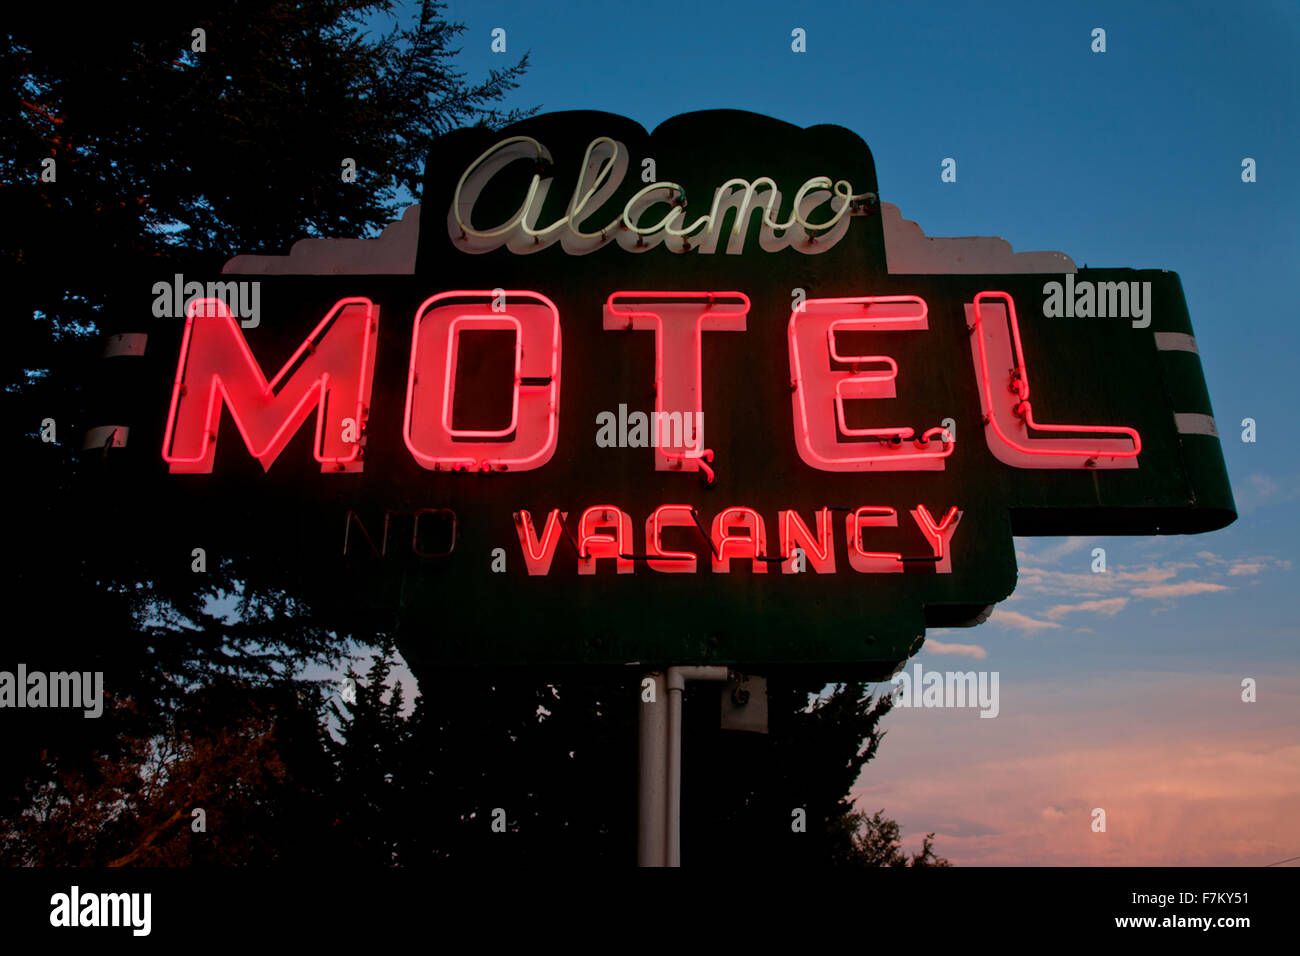 Neon sign saying 'Vacancy Alamo Motel' central california - Stock Image